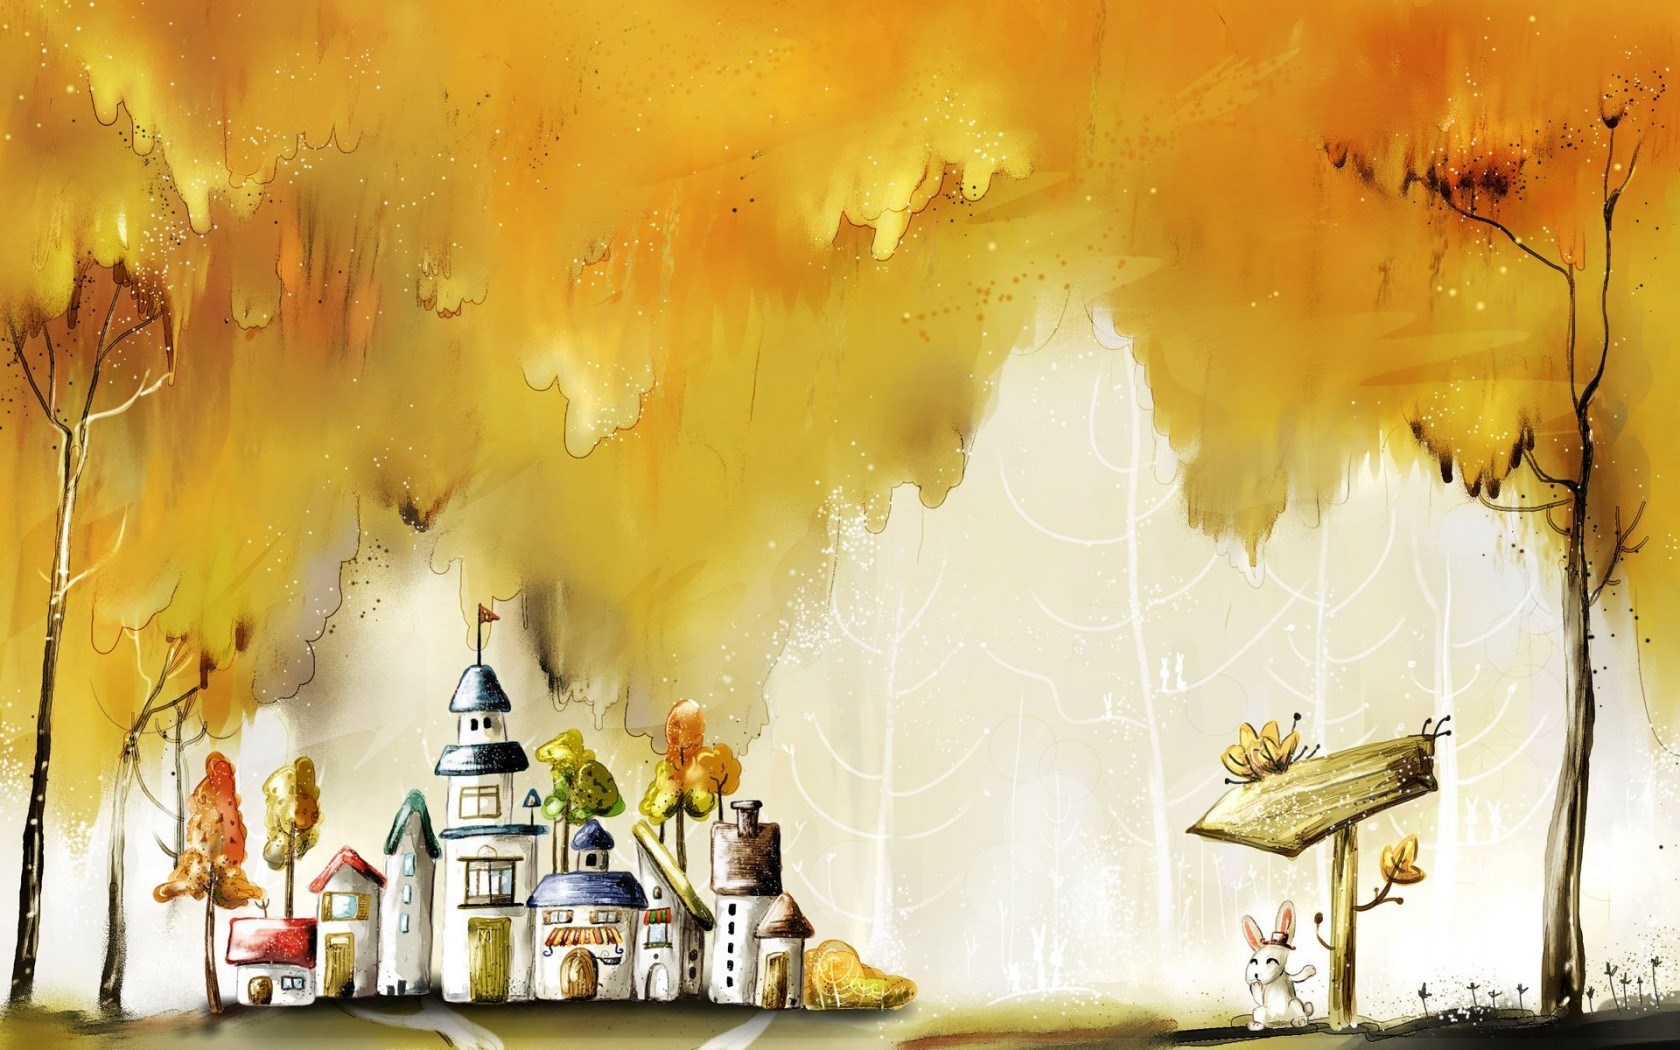 City Houses Autumn Trees Bunny Fairy Tale Drawing Painting